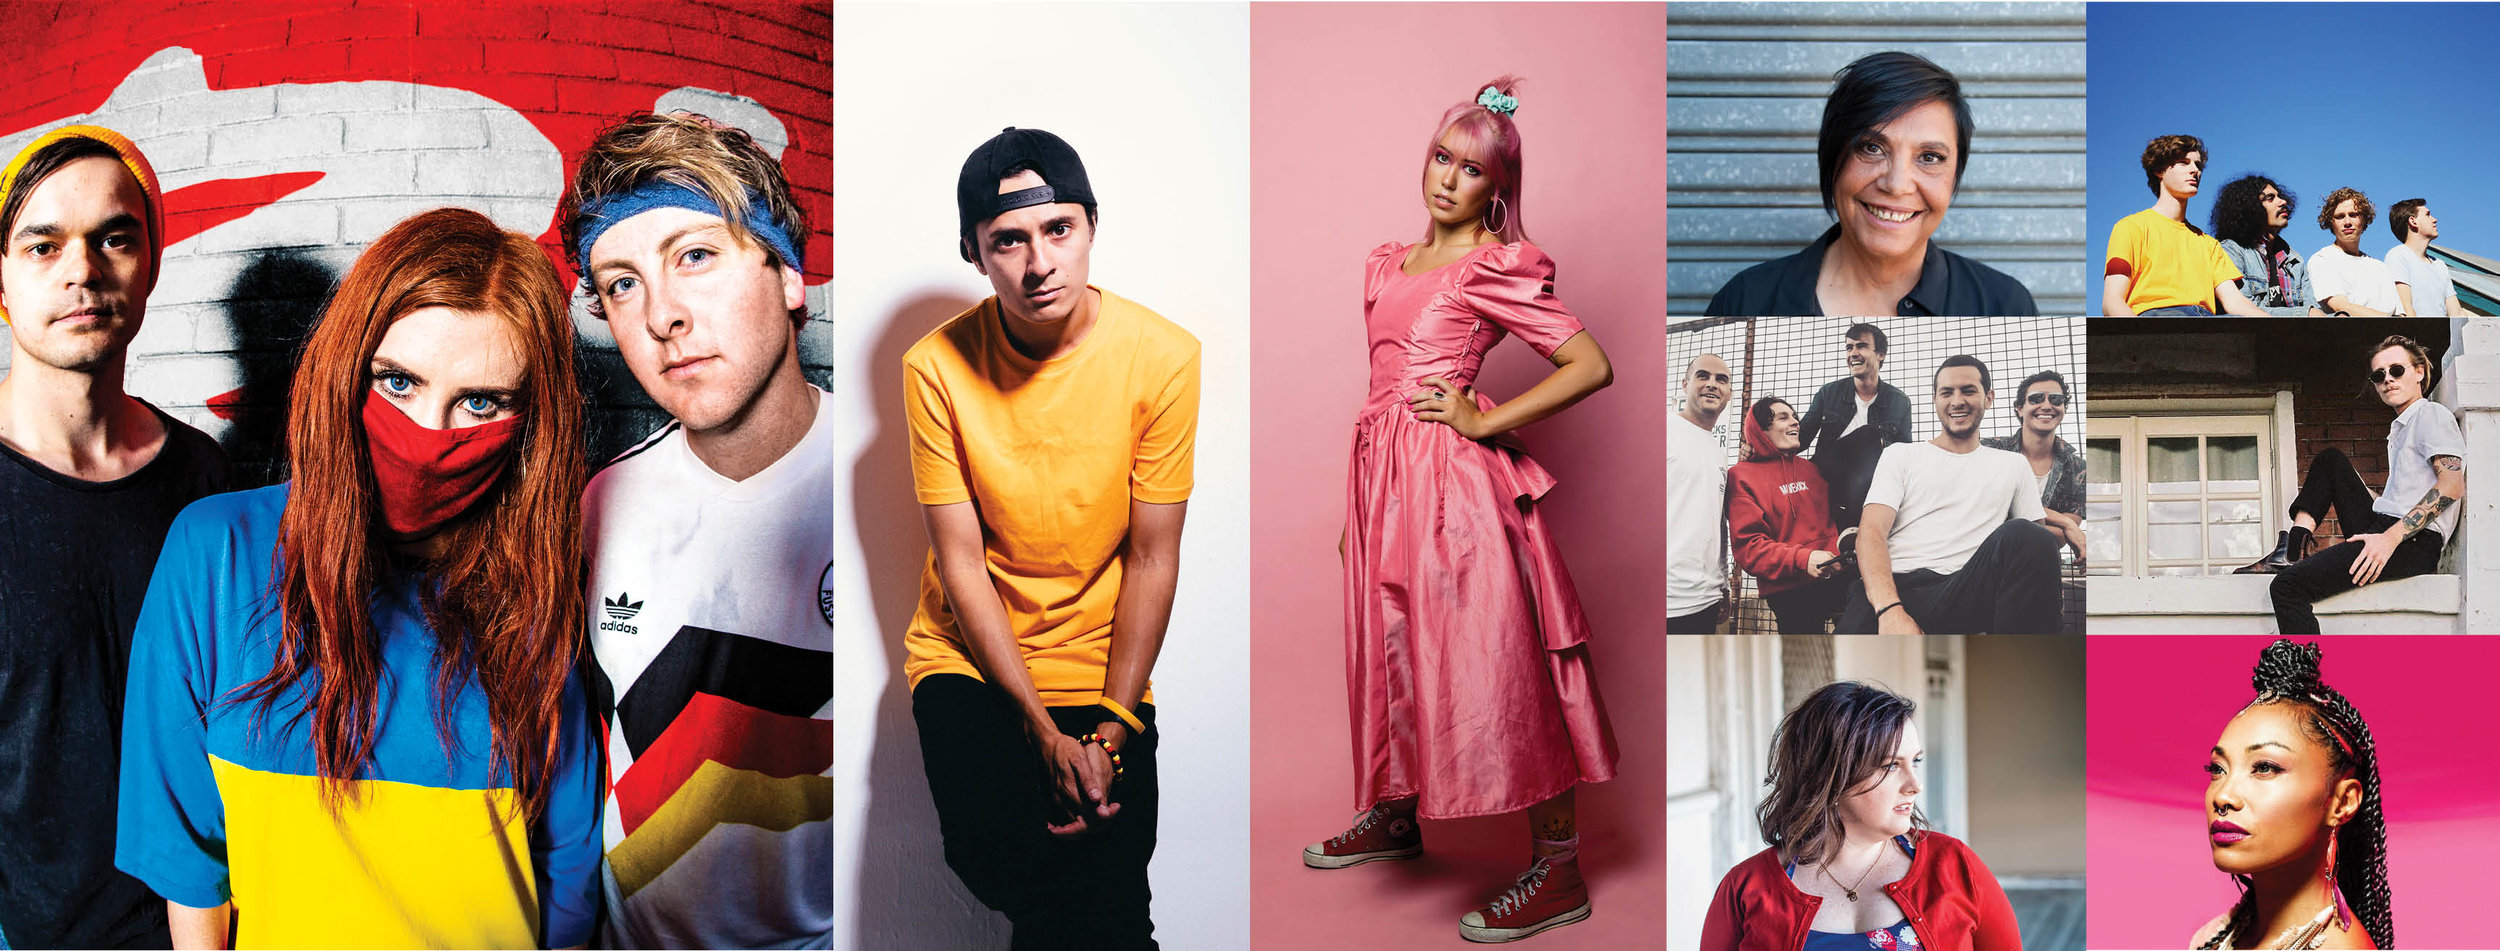 Joining the Australian Music Week lineup today (L-R): RedHook, DOBBY, Florian, Shellie Morris, Hibiscus Biscuit, Maverick, Bodie, Megan Cooper, Mirrah.